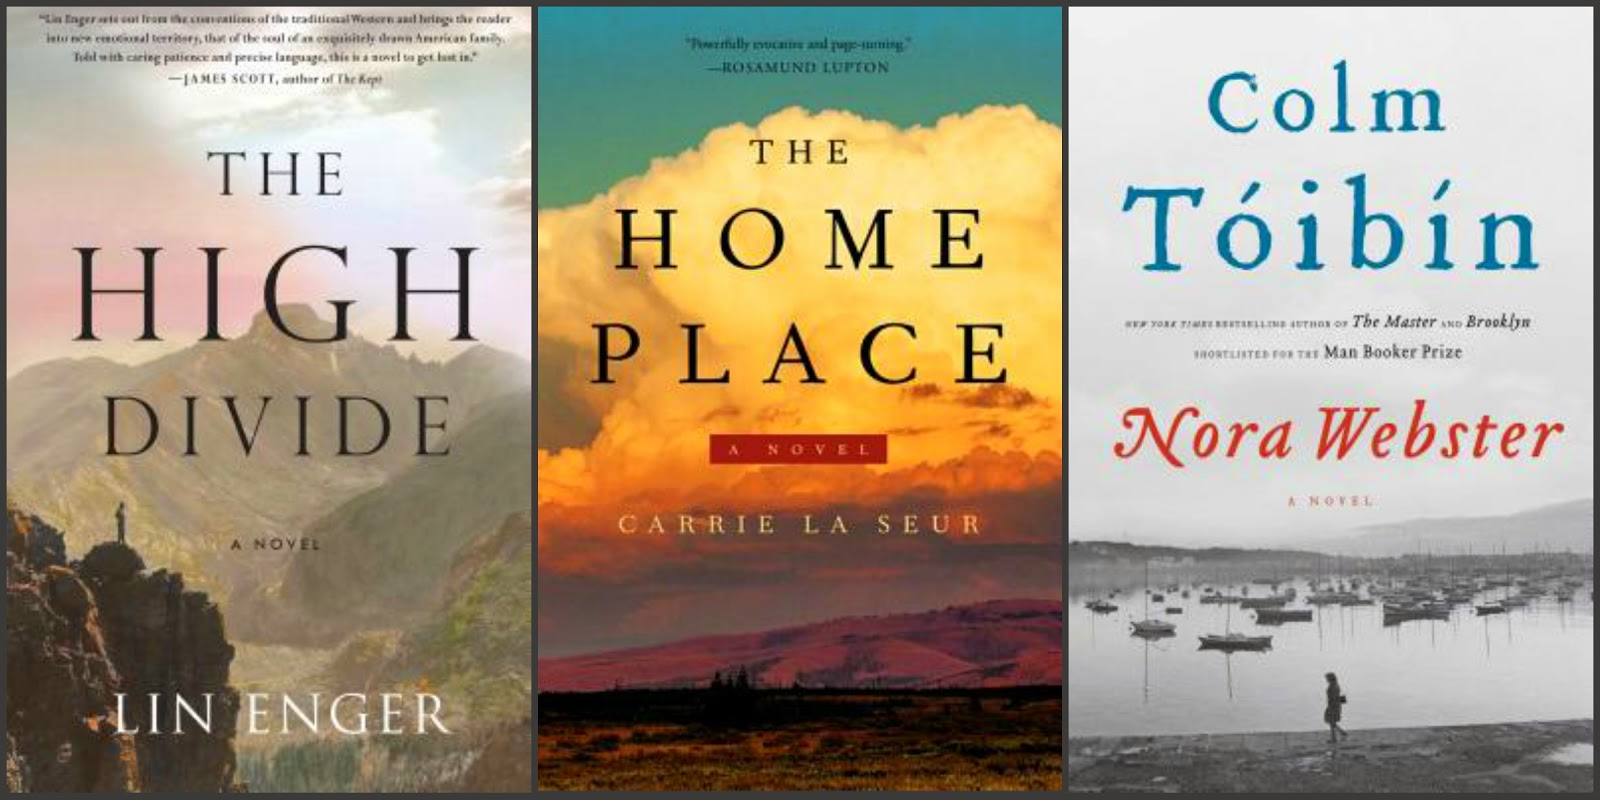 High Divide by Lin Enger, Home Place by Carrie La Seur, Nora Webster by Colm Toibin